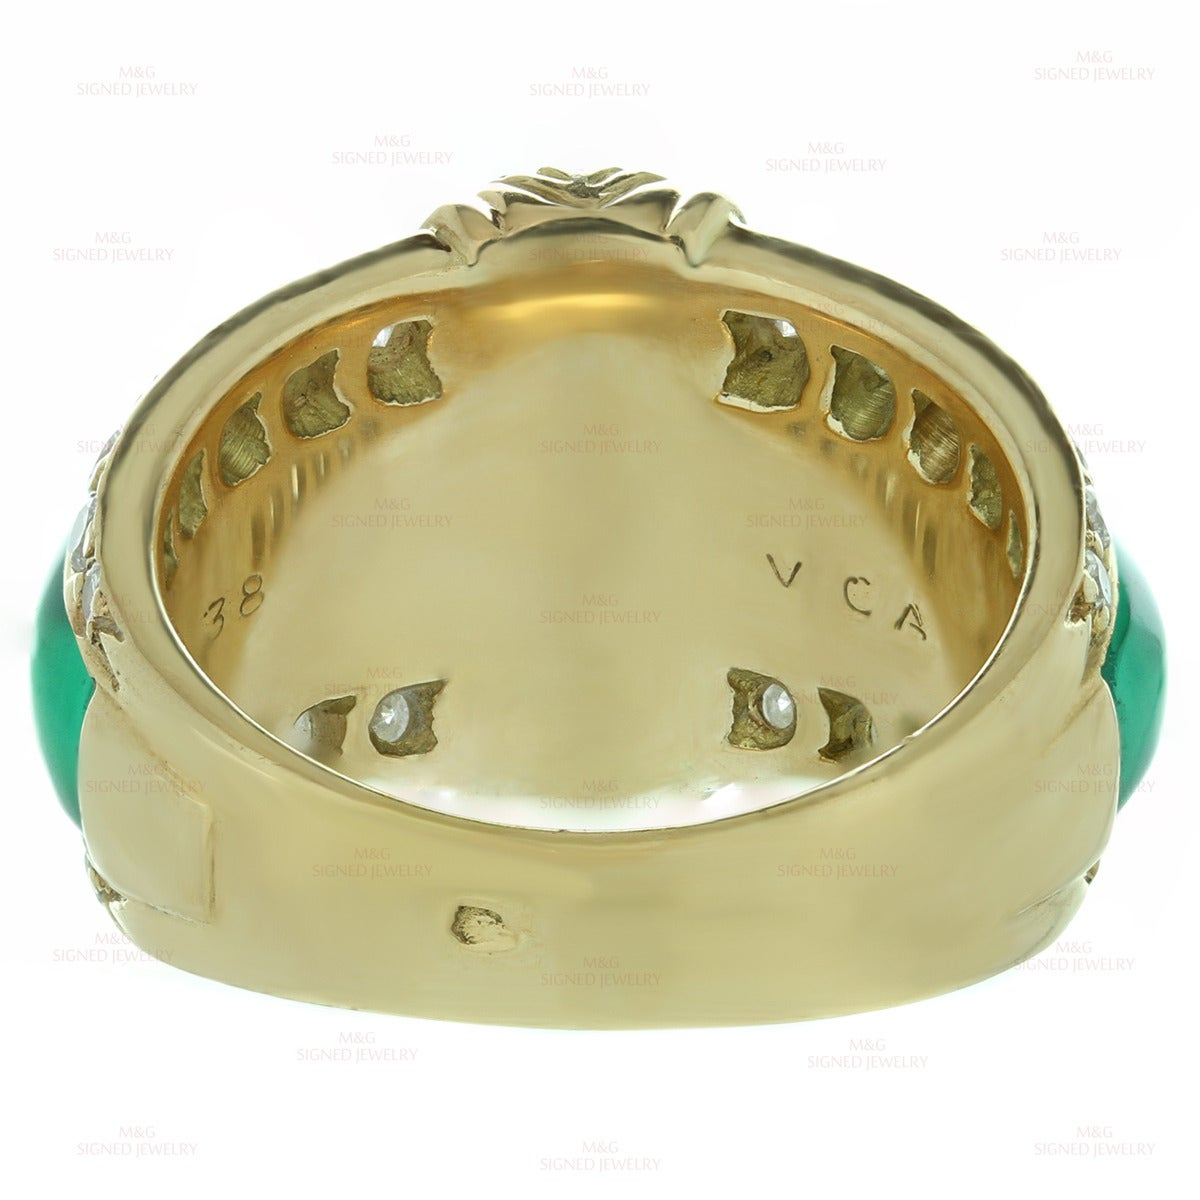 Van Cleef & Arpels Green Chrysoprase Diamond Yellow Gold Ring In Excellent Condition For Sale In New York, NY